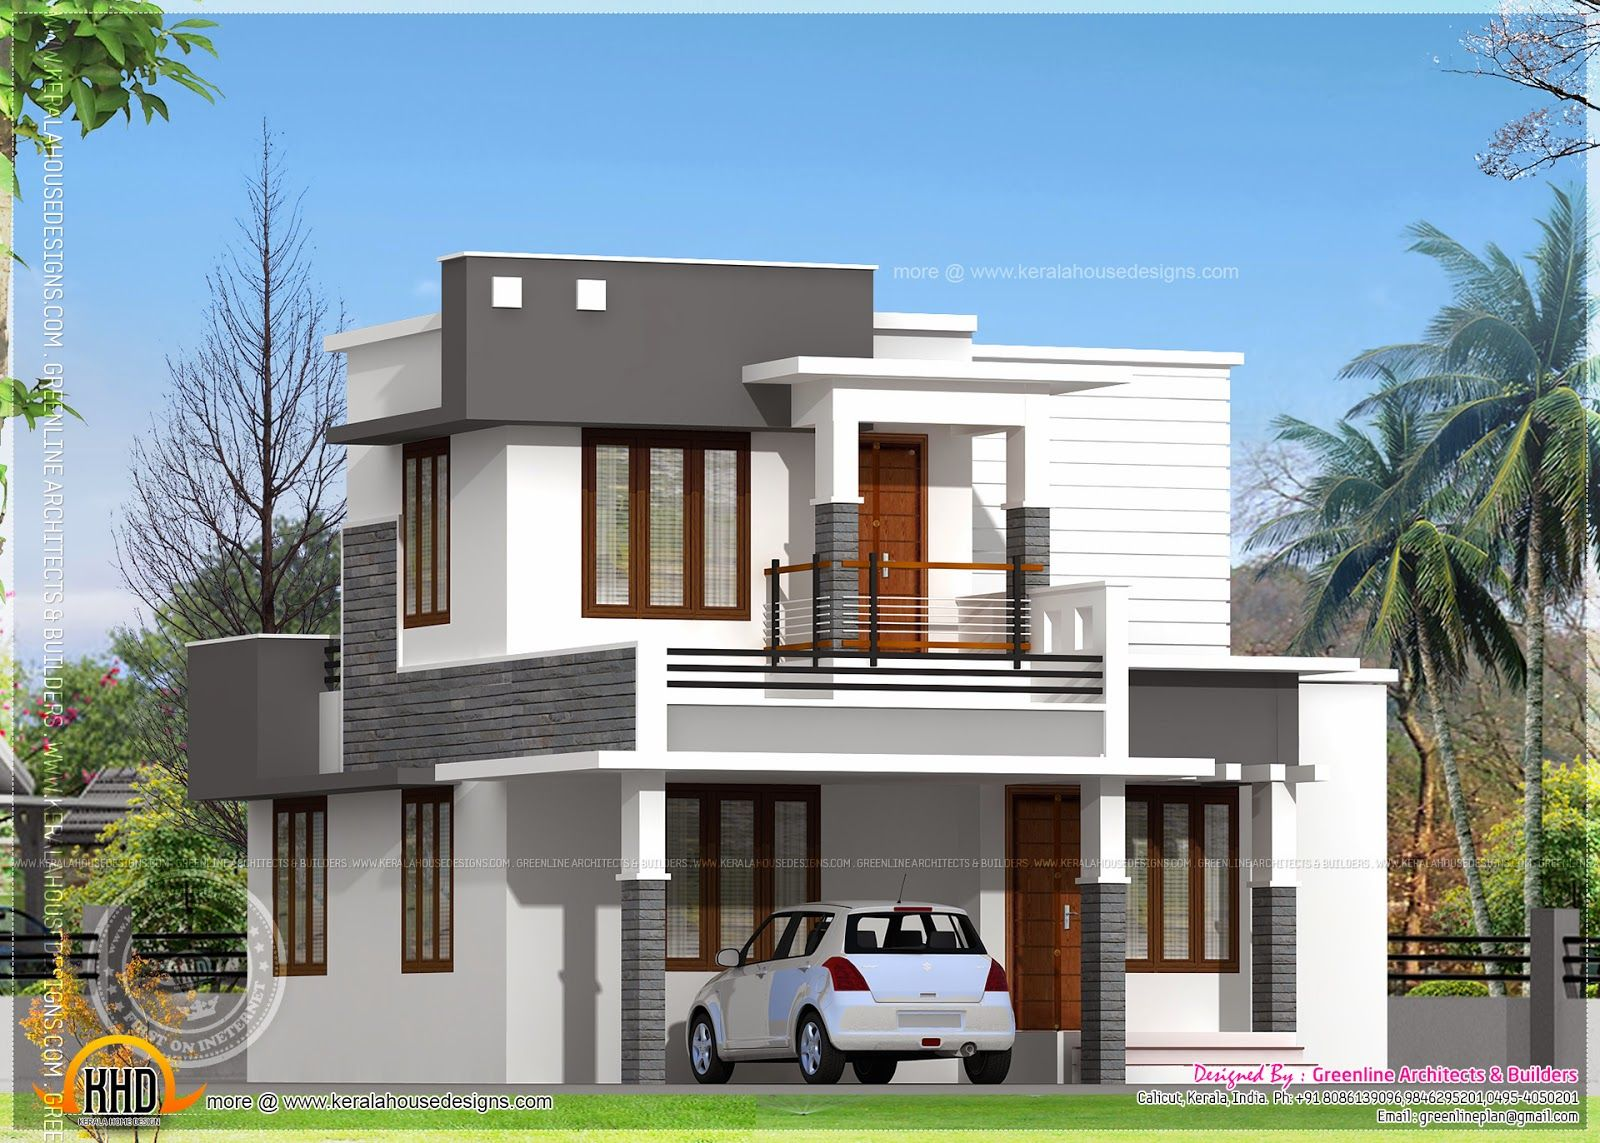 Sq Feet Details Facilities House Flat Roof Contemporary Home Design Kerala Plans